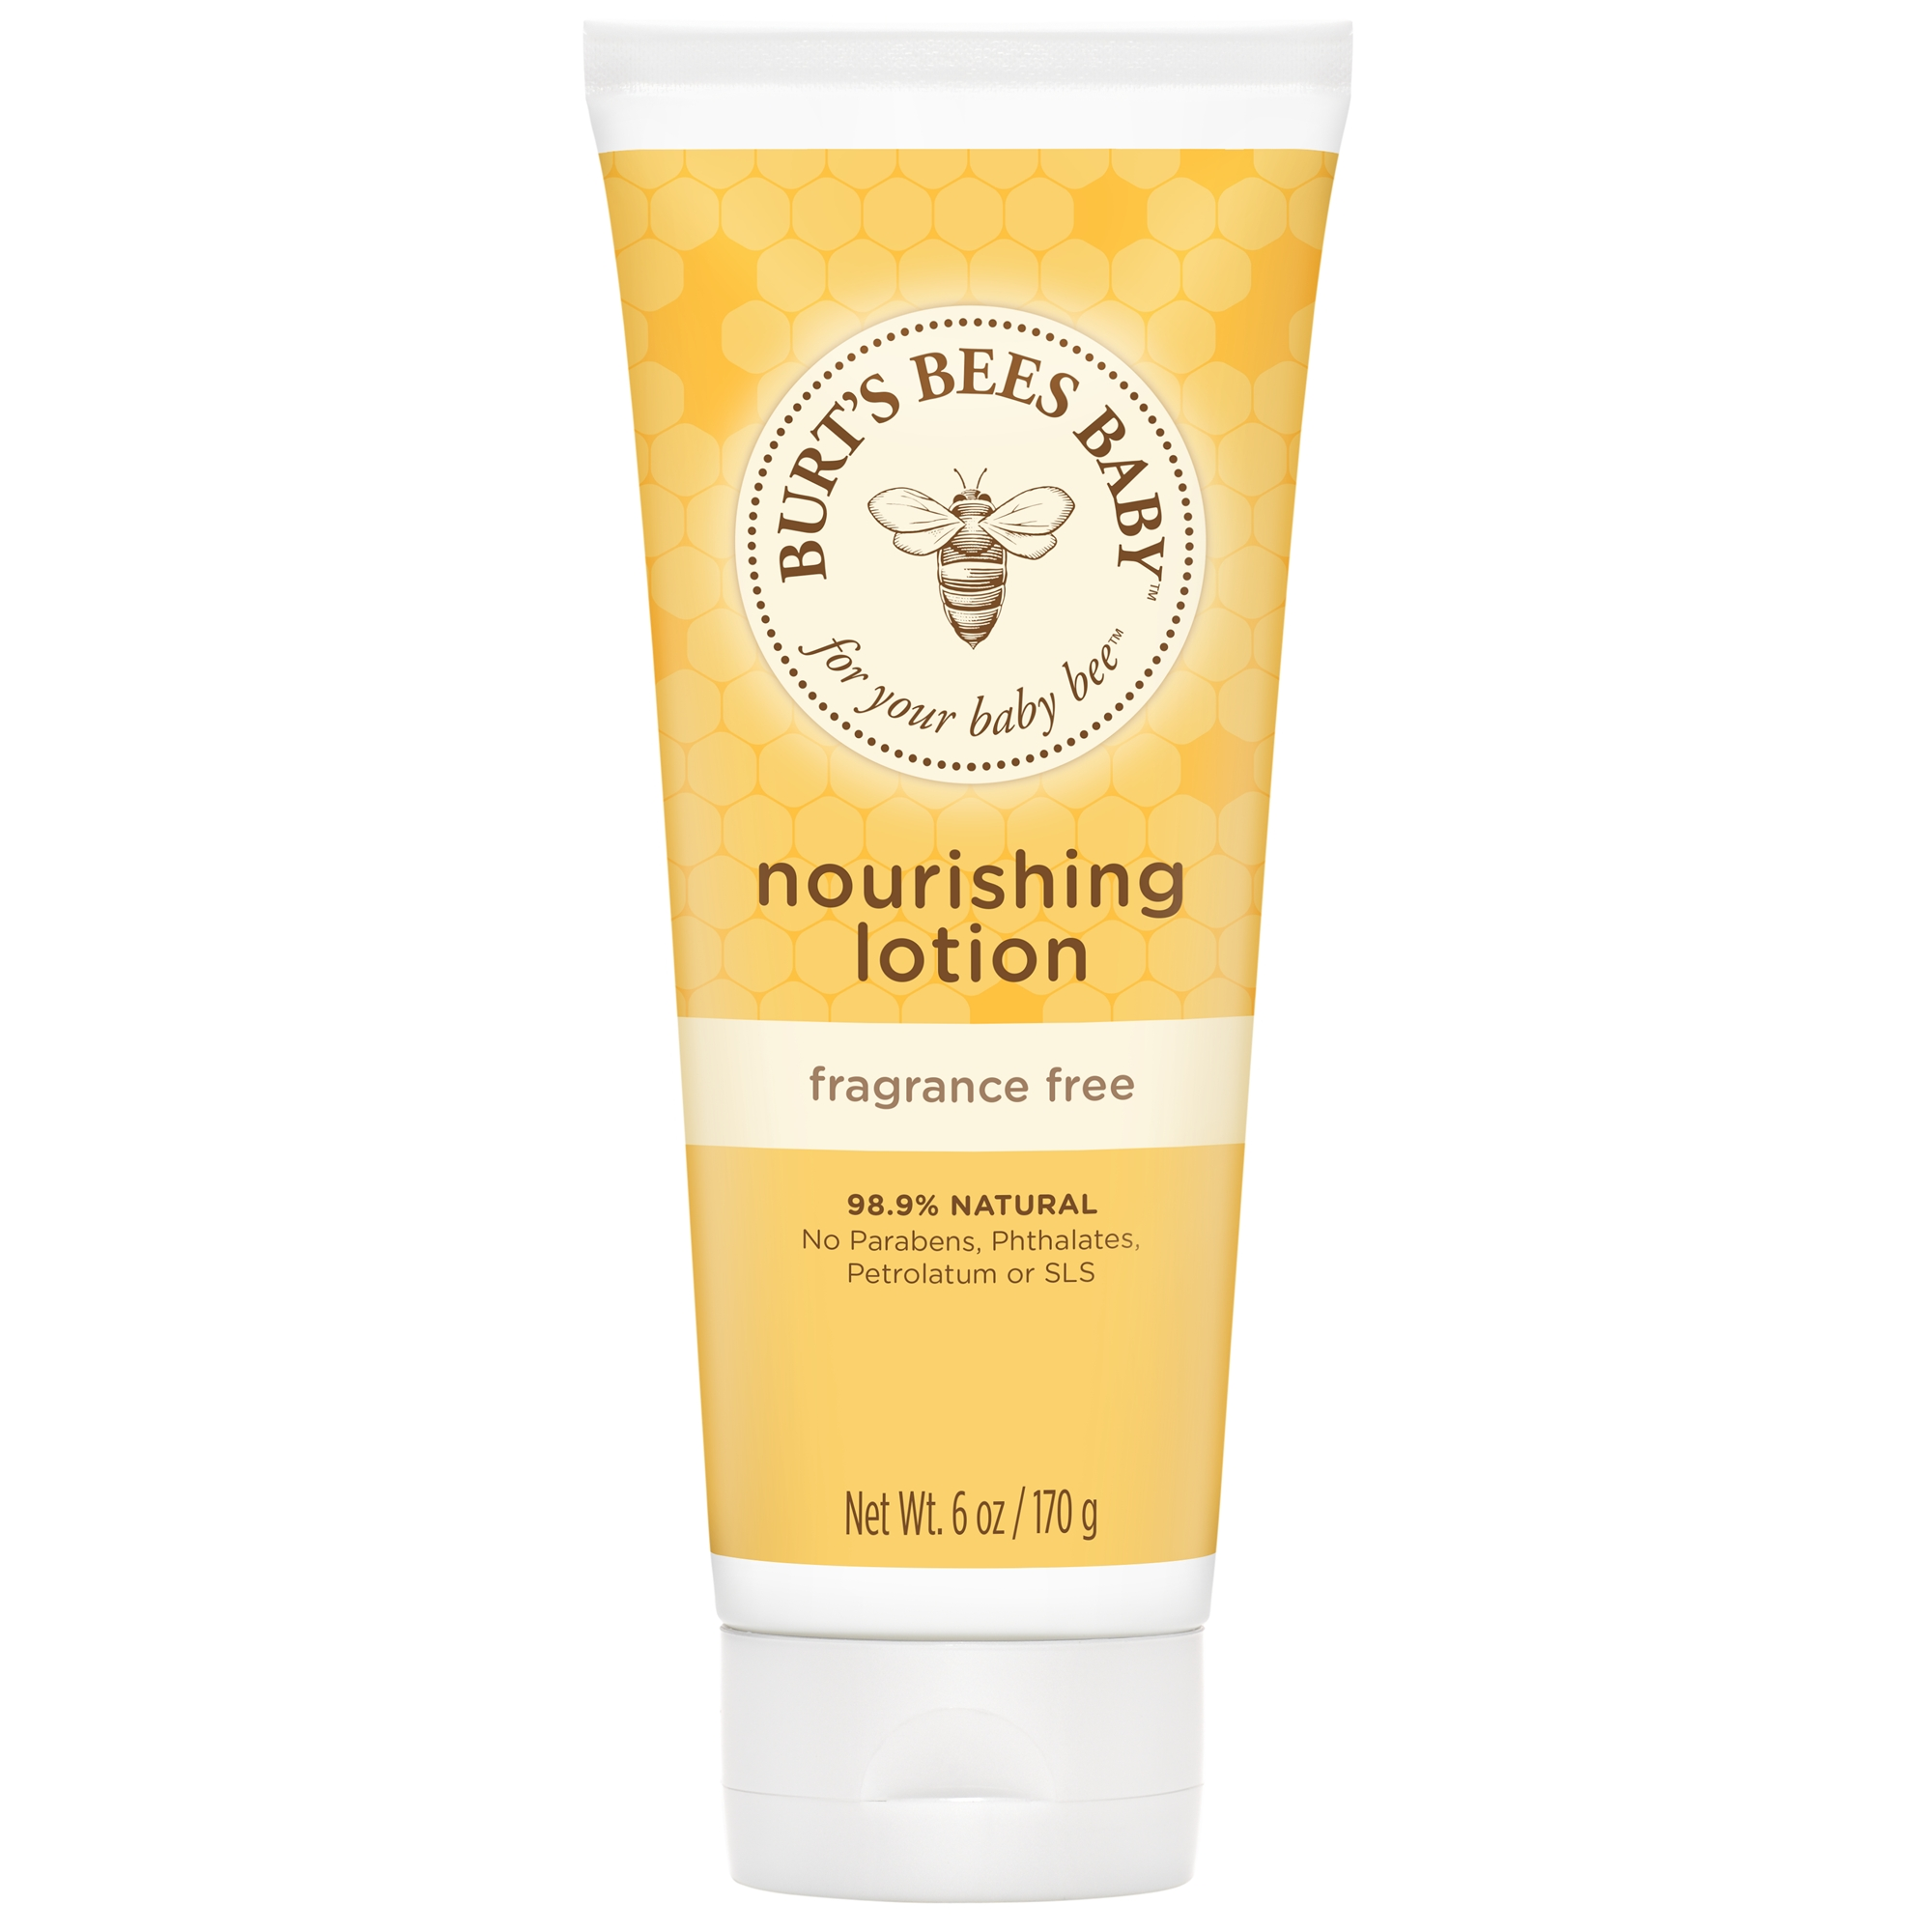 Burt's Bees Baby Nourishing Lotion, Fragrance Free Baby Lotion - 6 oz Tube